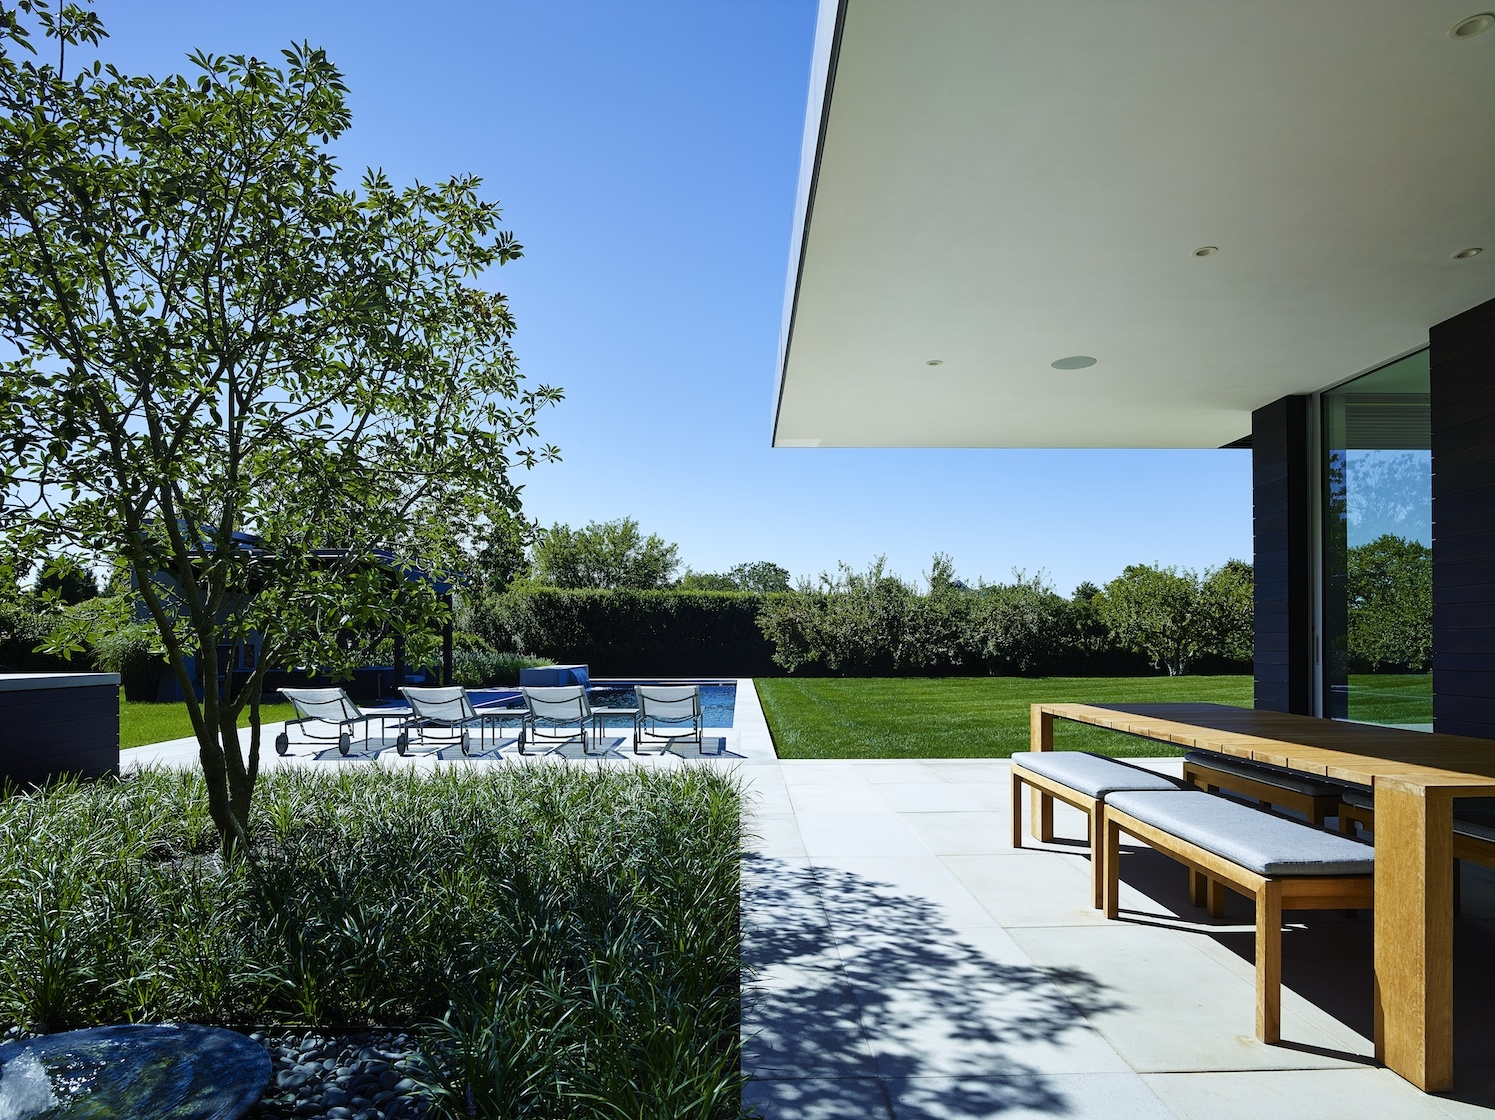 Orchard House in Sagaponack, New York by Stelle Lomont Rouhani Architects